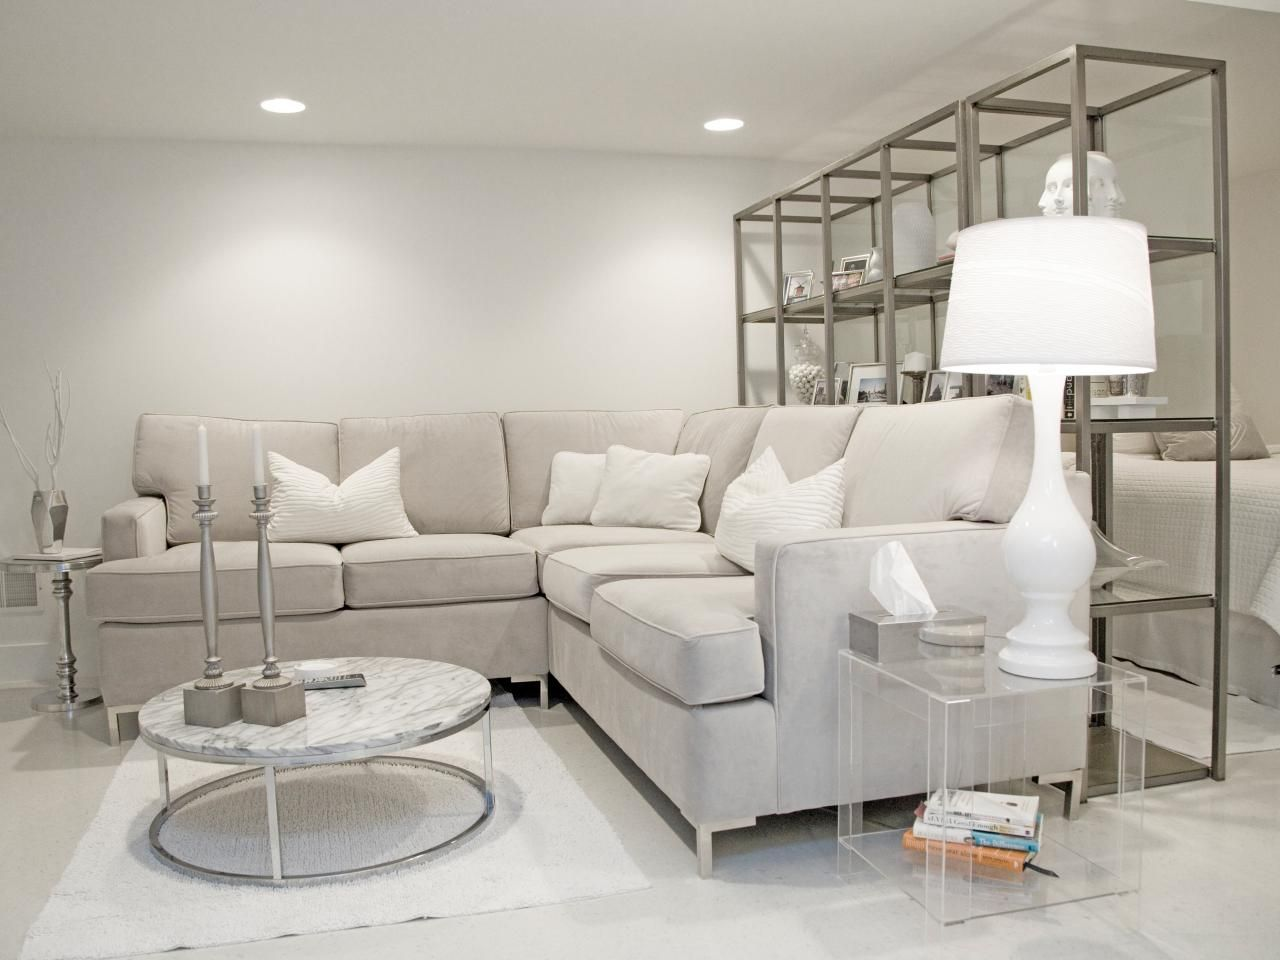 Grey In Home Decor: Passing Trend Or Here To Stay?